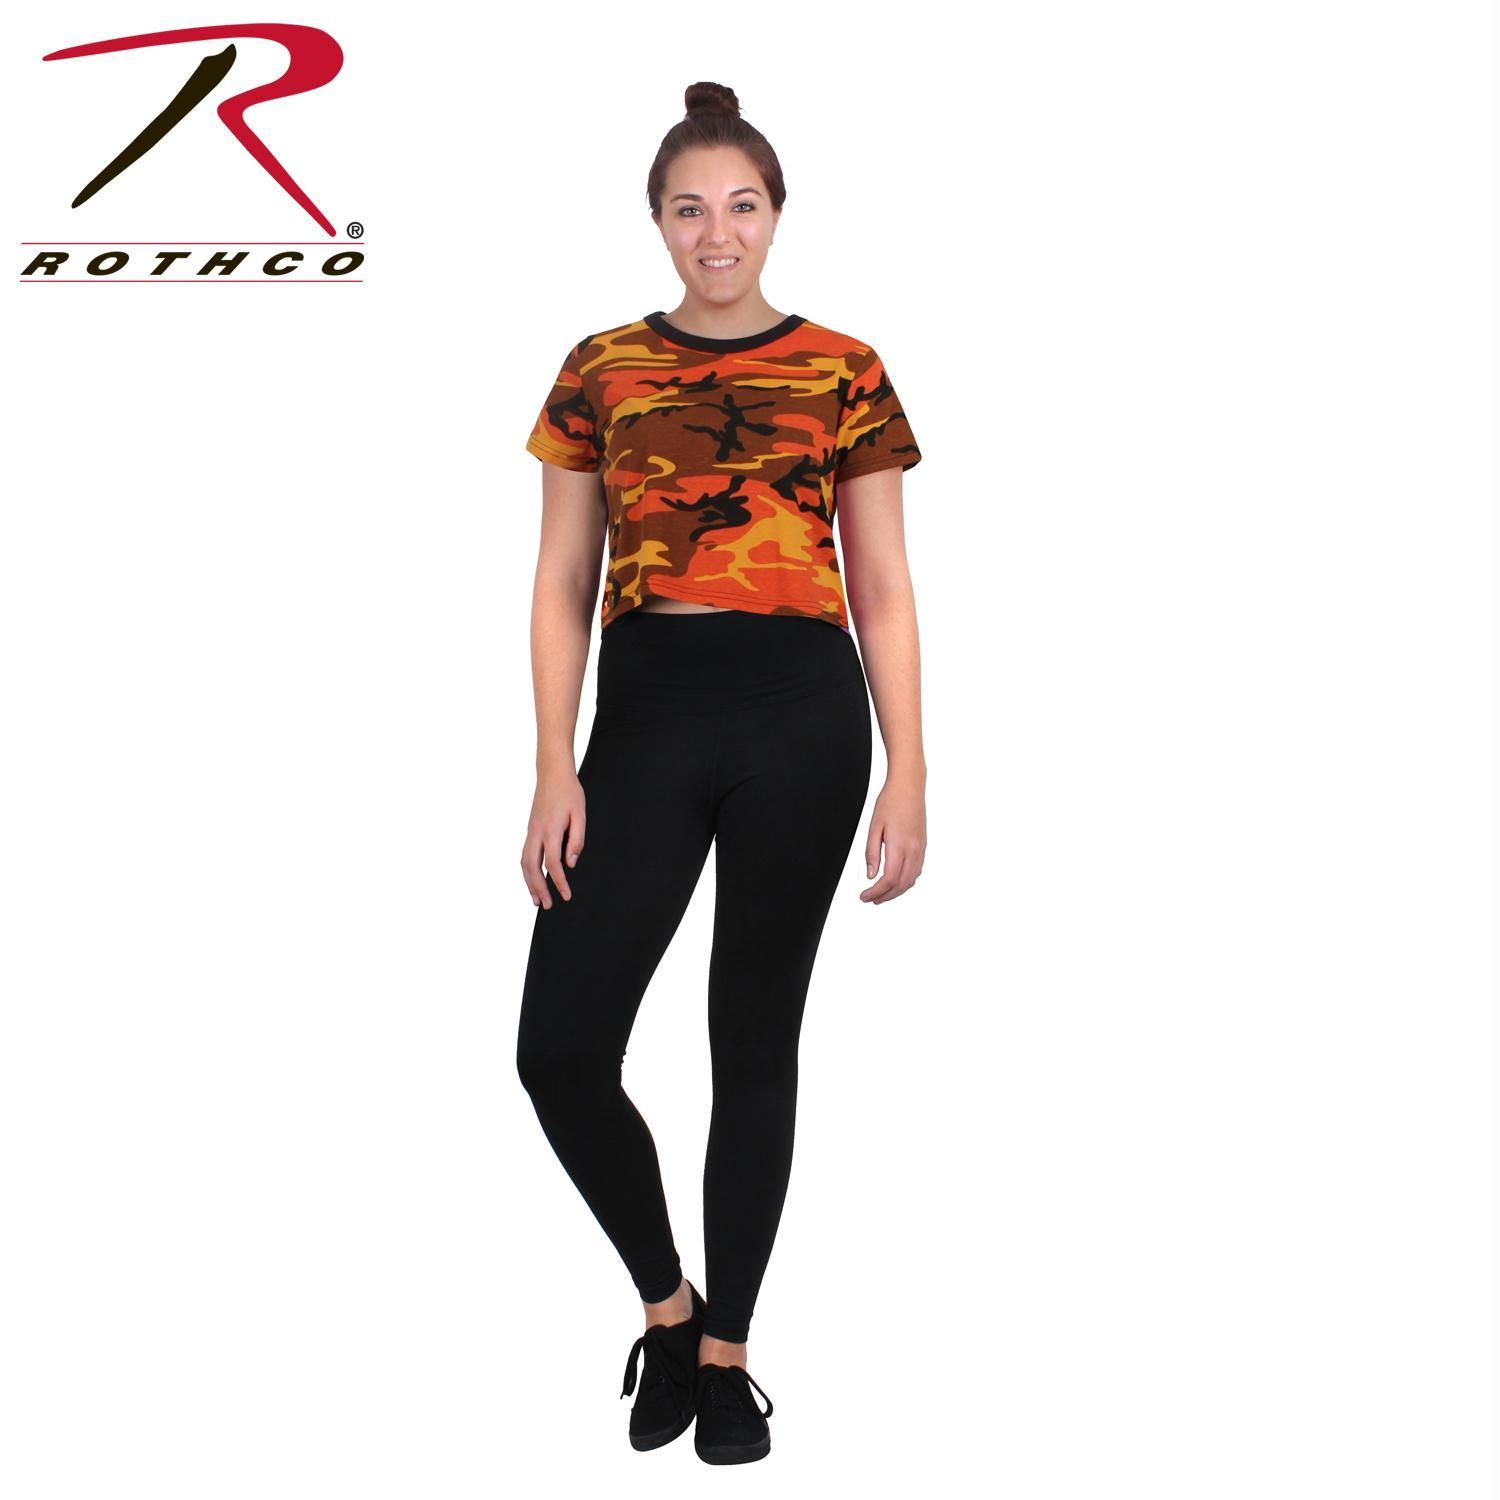 46a5e84ea1d Rothco Womens Camo Crop Top | Products | Camo, Crop tops, Tops